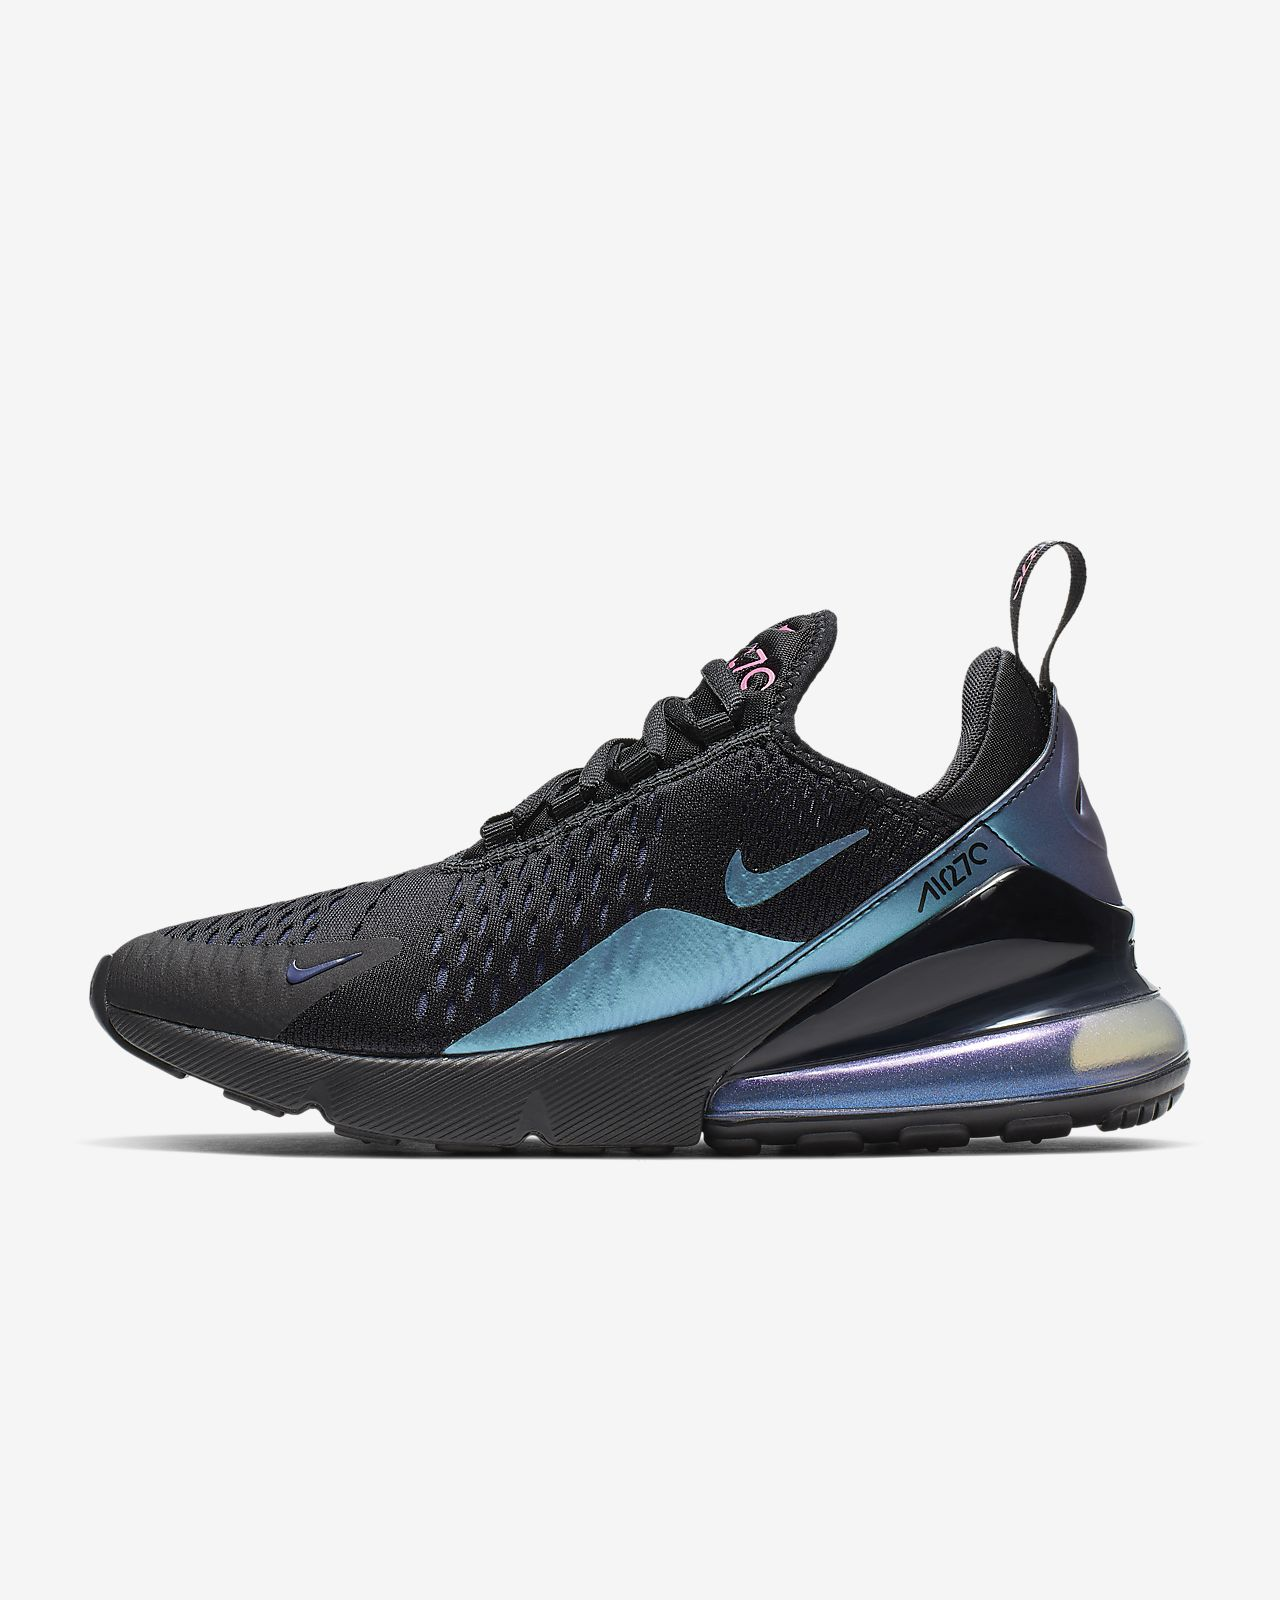 1435cded20edb Nike Air Max 270 Women s Shoe. Nike.com GB